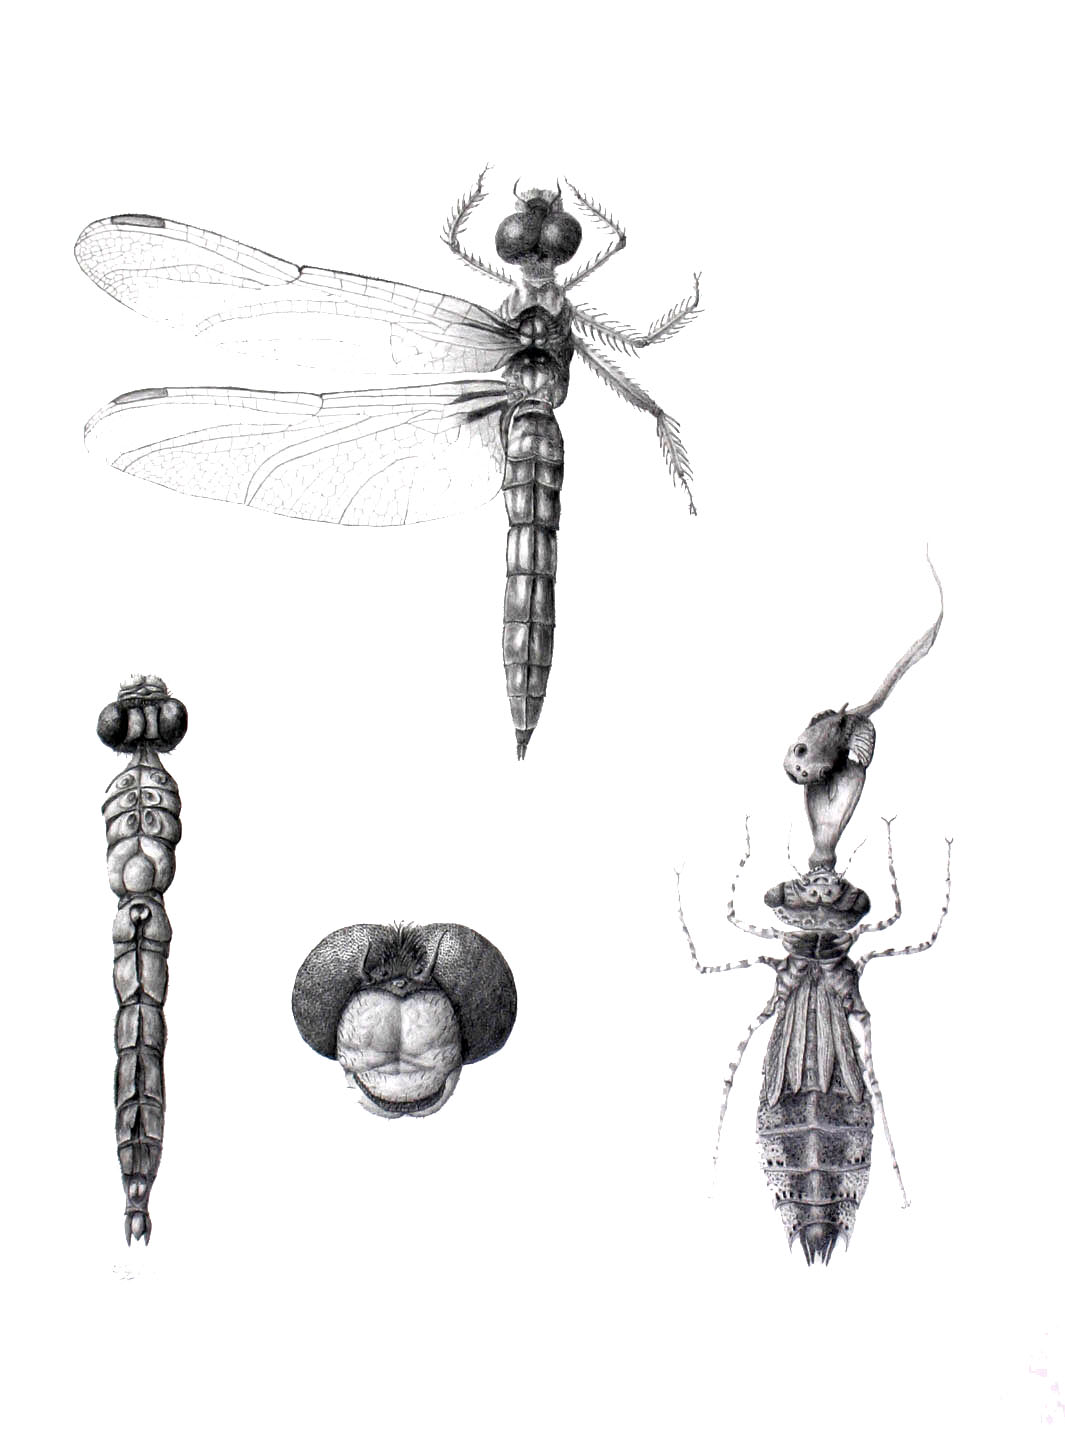 Scientific illustration of insects